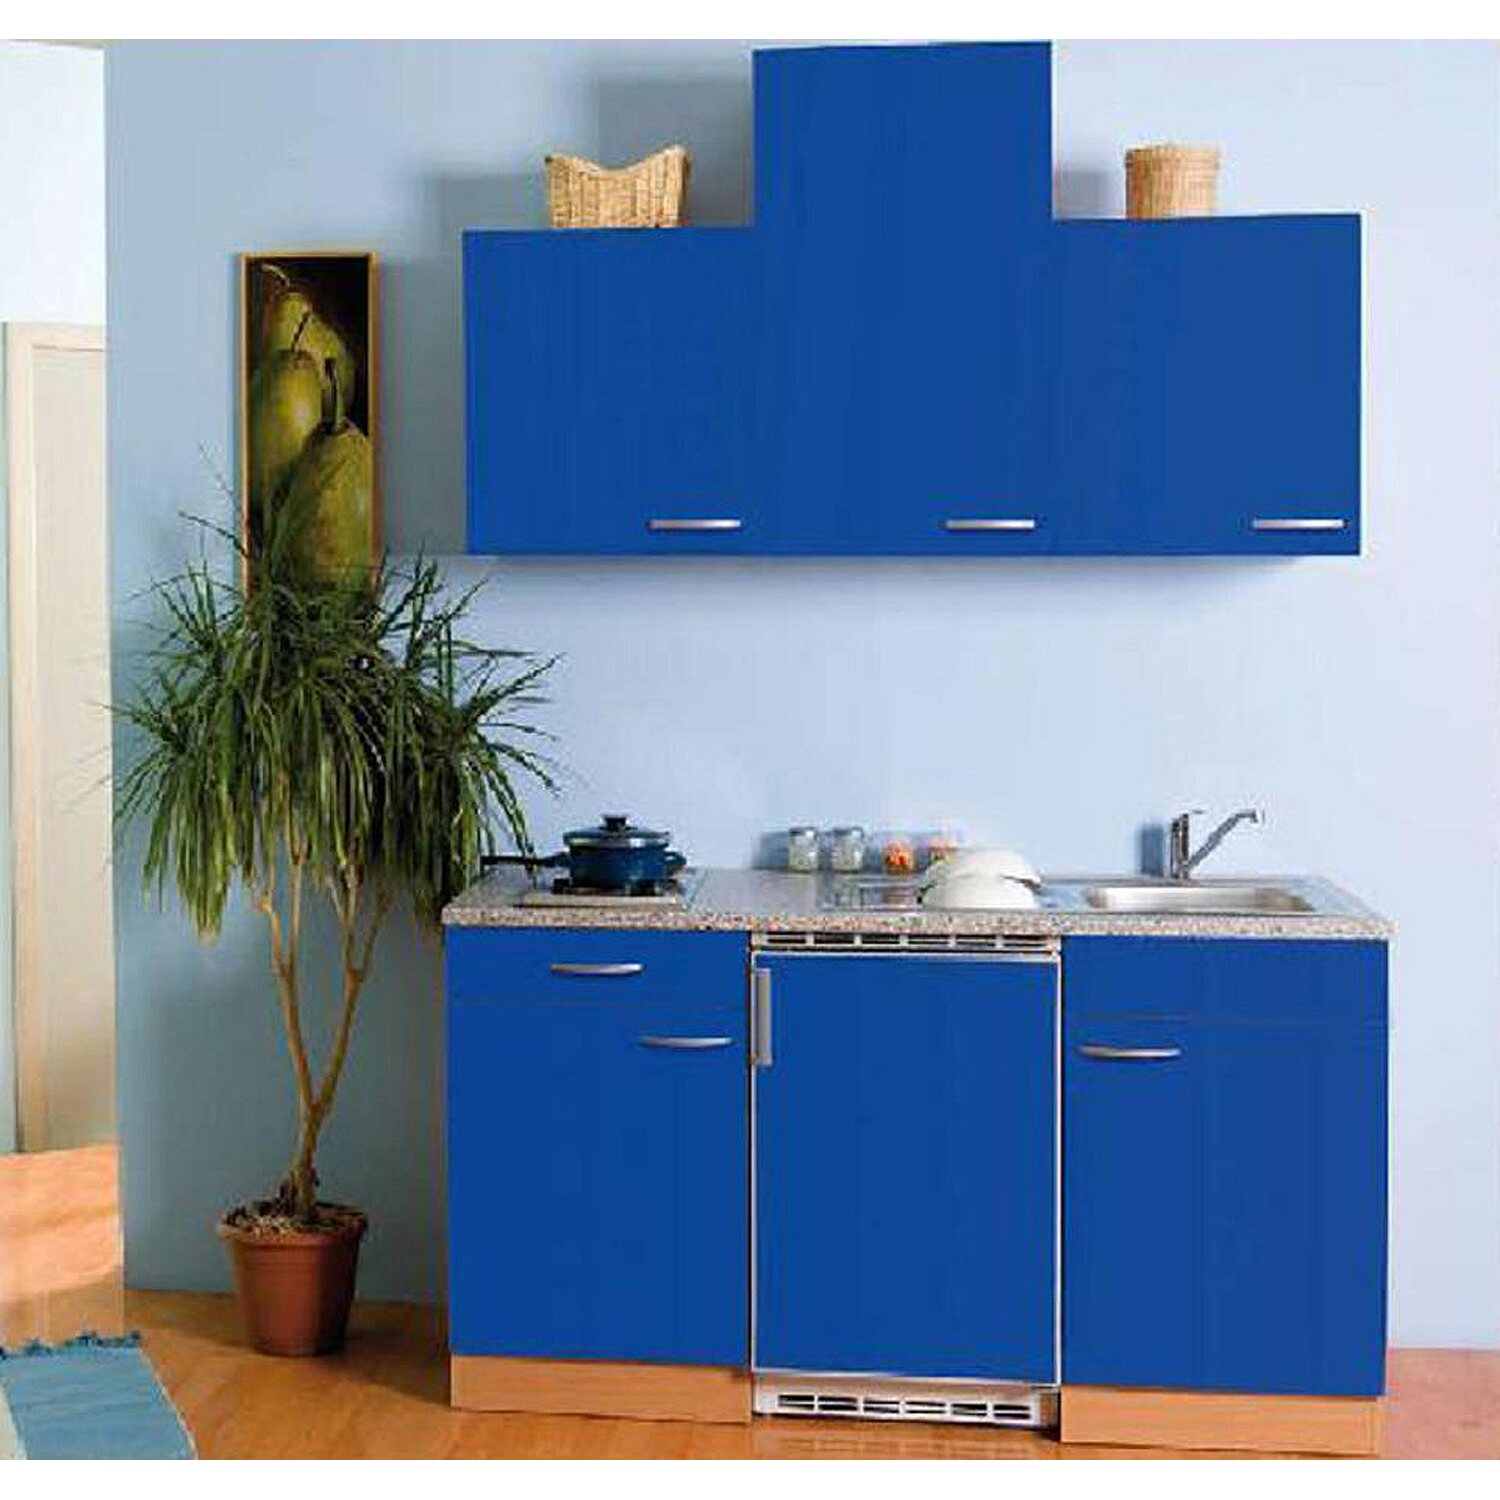 mebasa k chenblock 150 cm mit hochschrank blau kaufen bei obi. Black Bedroom Furniture Sets. Home Design Ideas